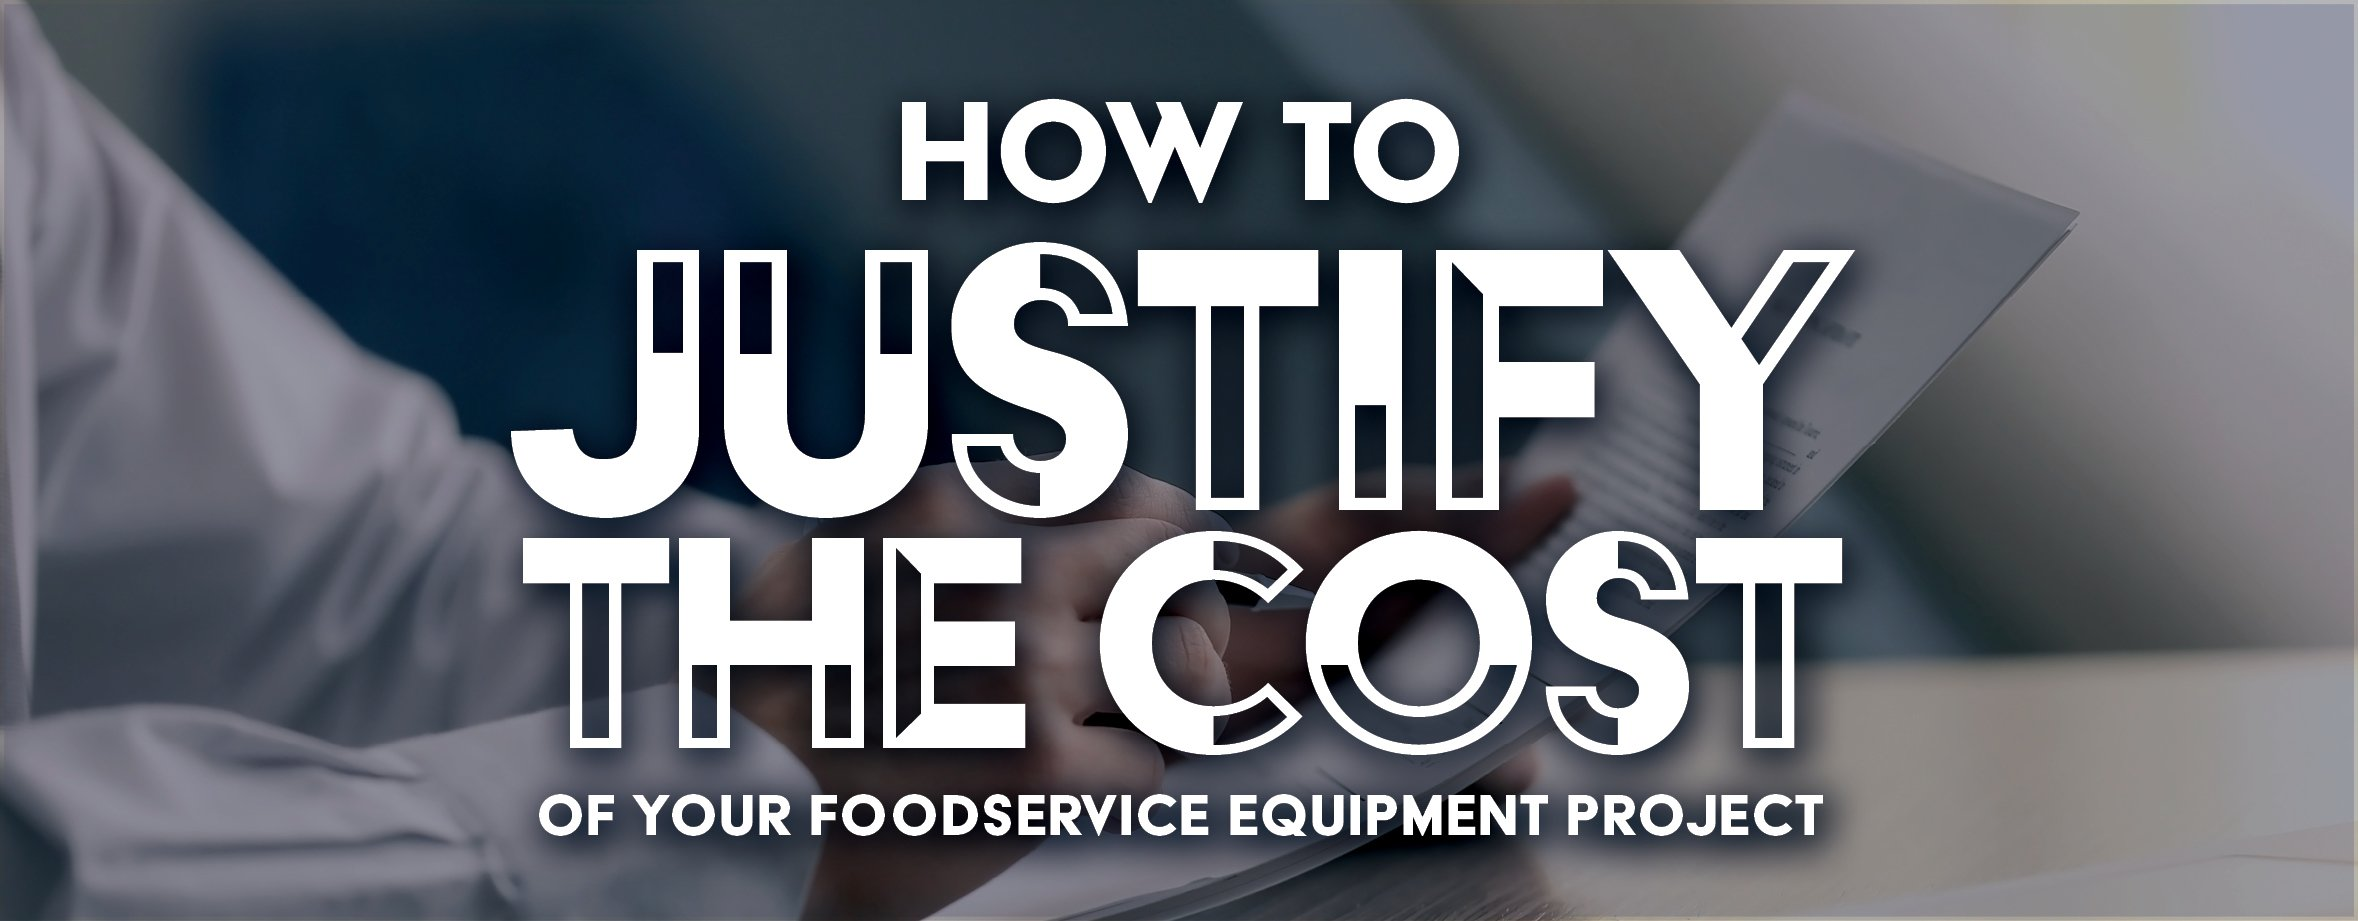 How to Justify the Cost of New Equipment